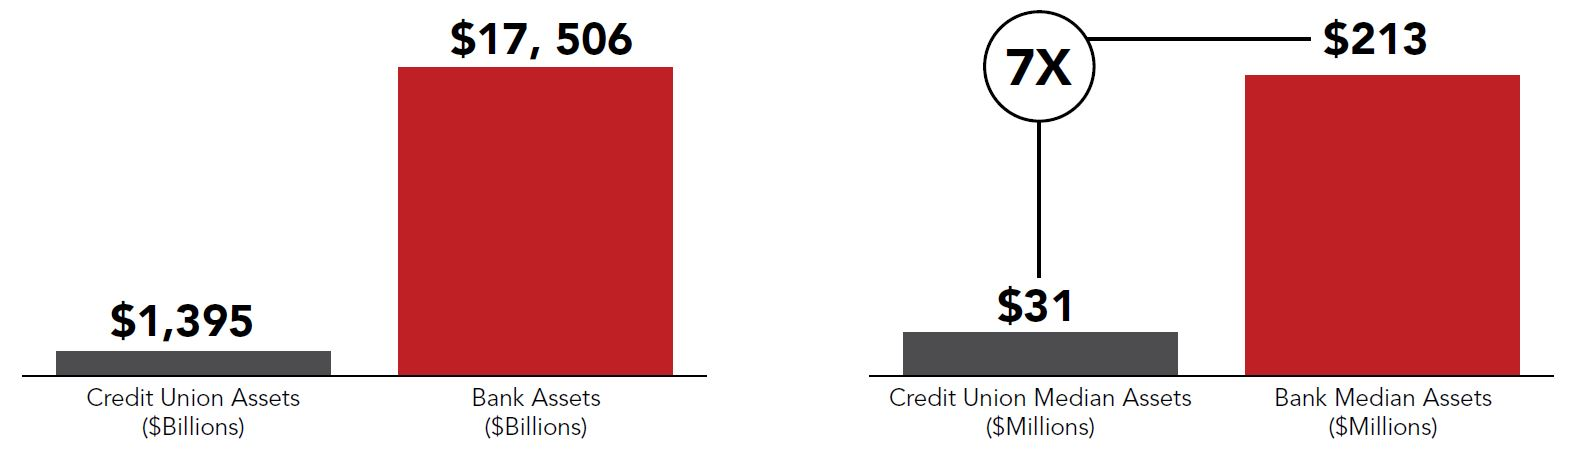 Market share compared: Banks and credit unions